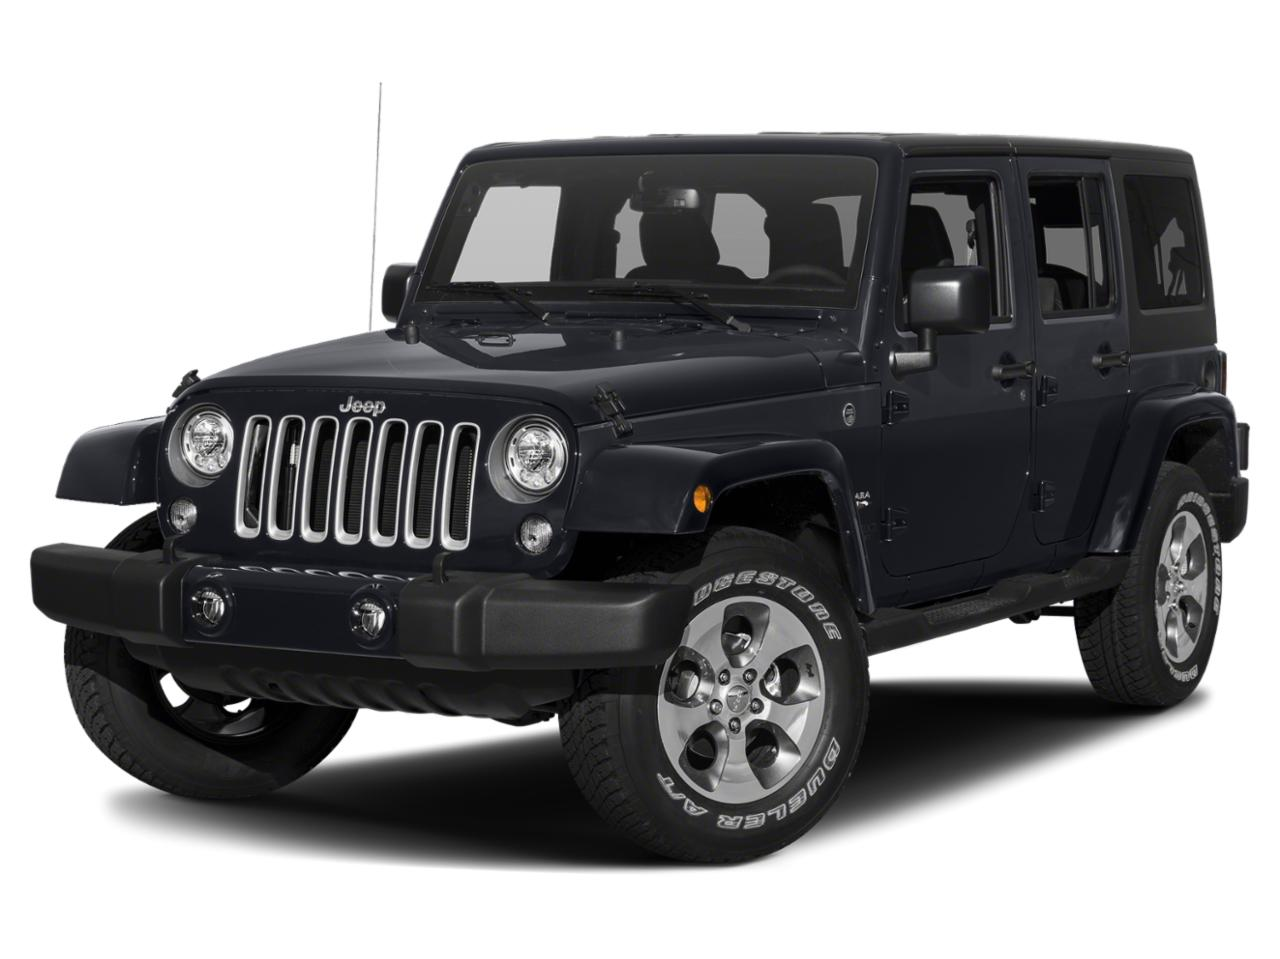 2018 Jeep Wrangler JK Unlimited Vehicle Photo in Plainfield, IL 60586